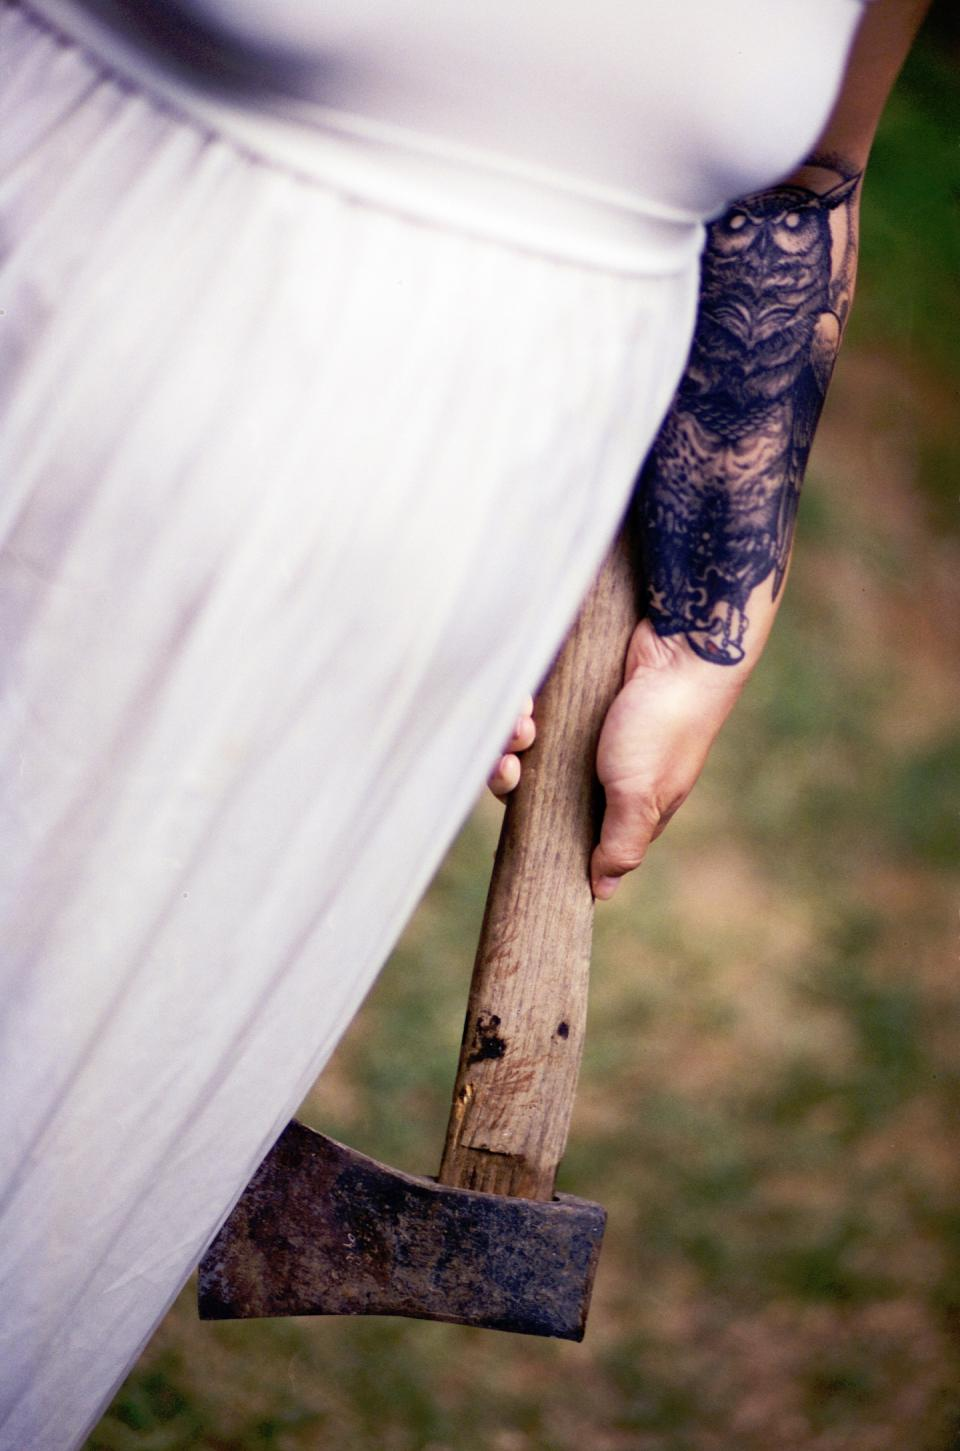 weapon wood ax people hand owl tattoo